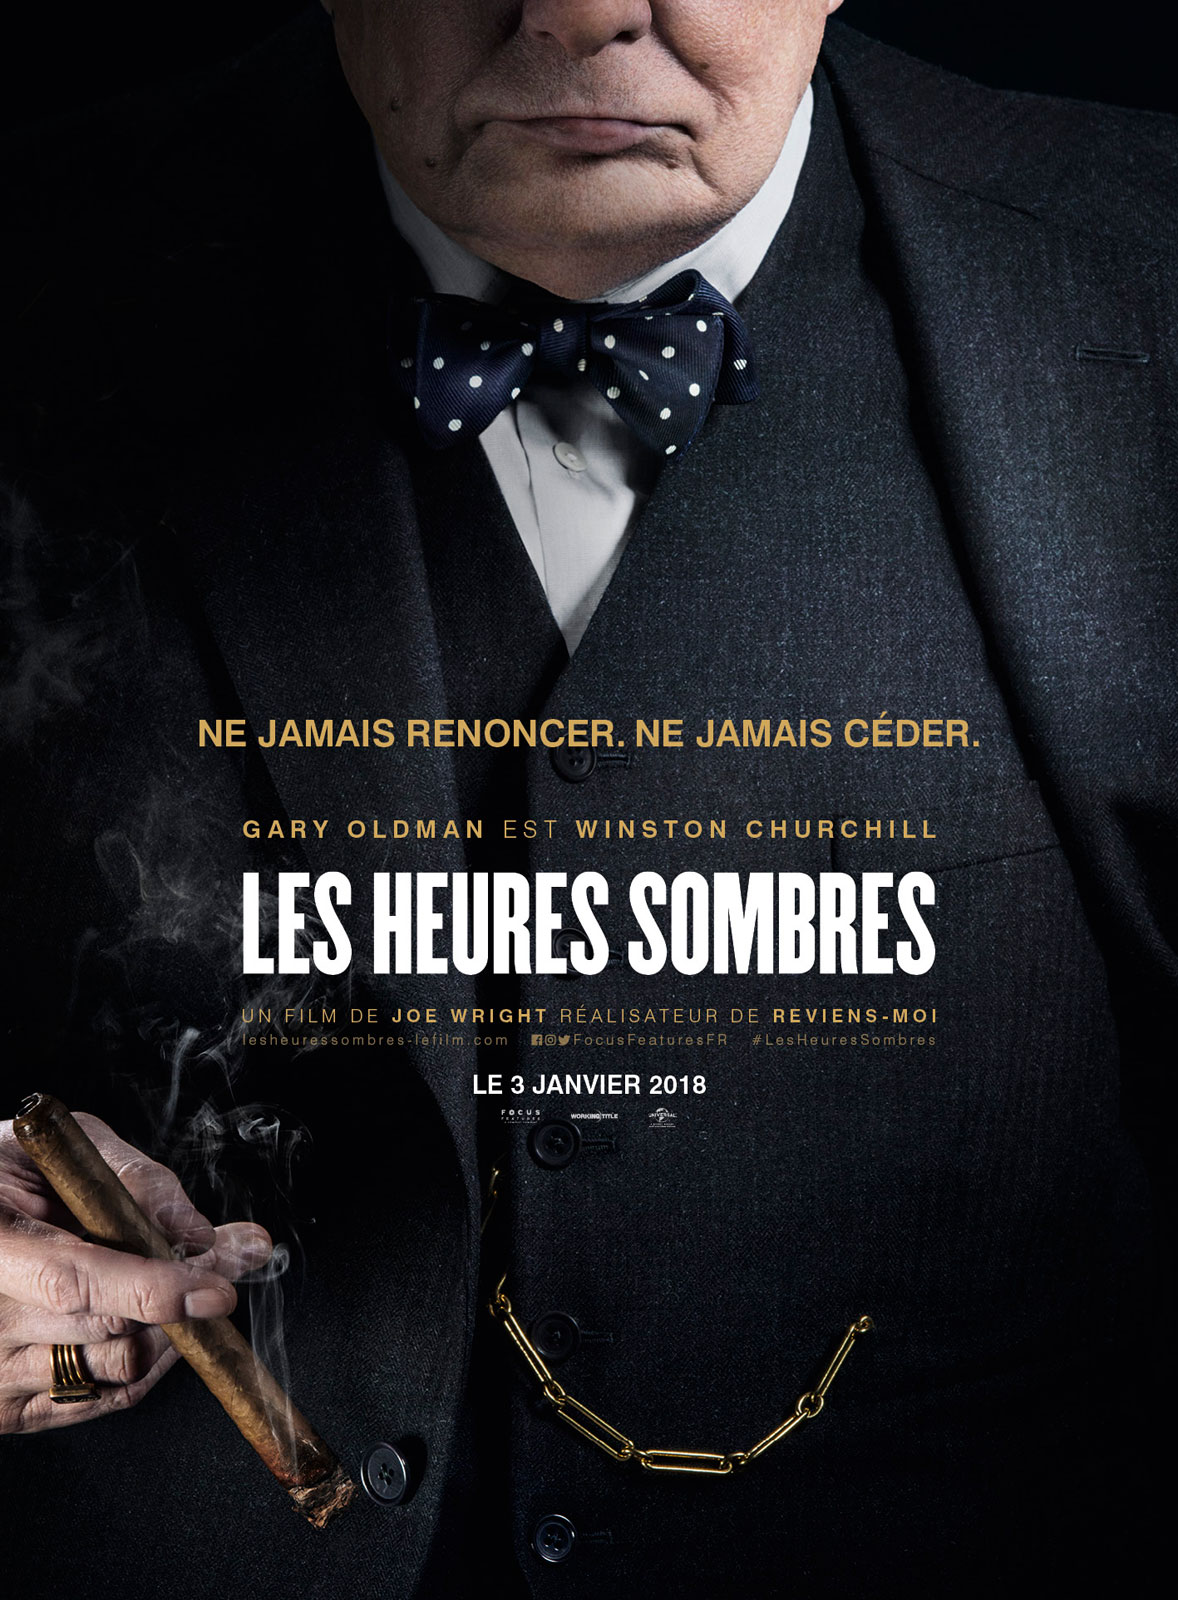 AfficheLes heures sombres